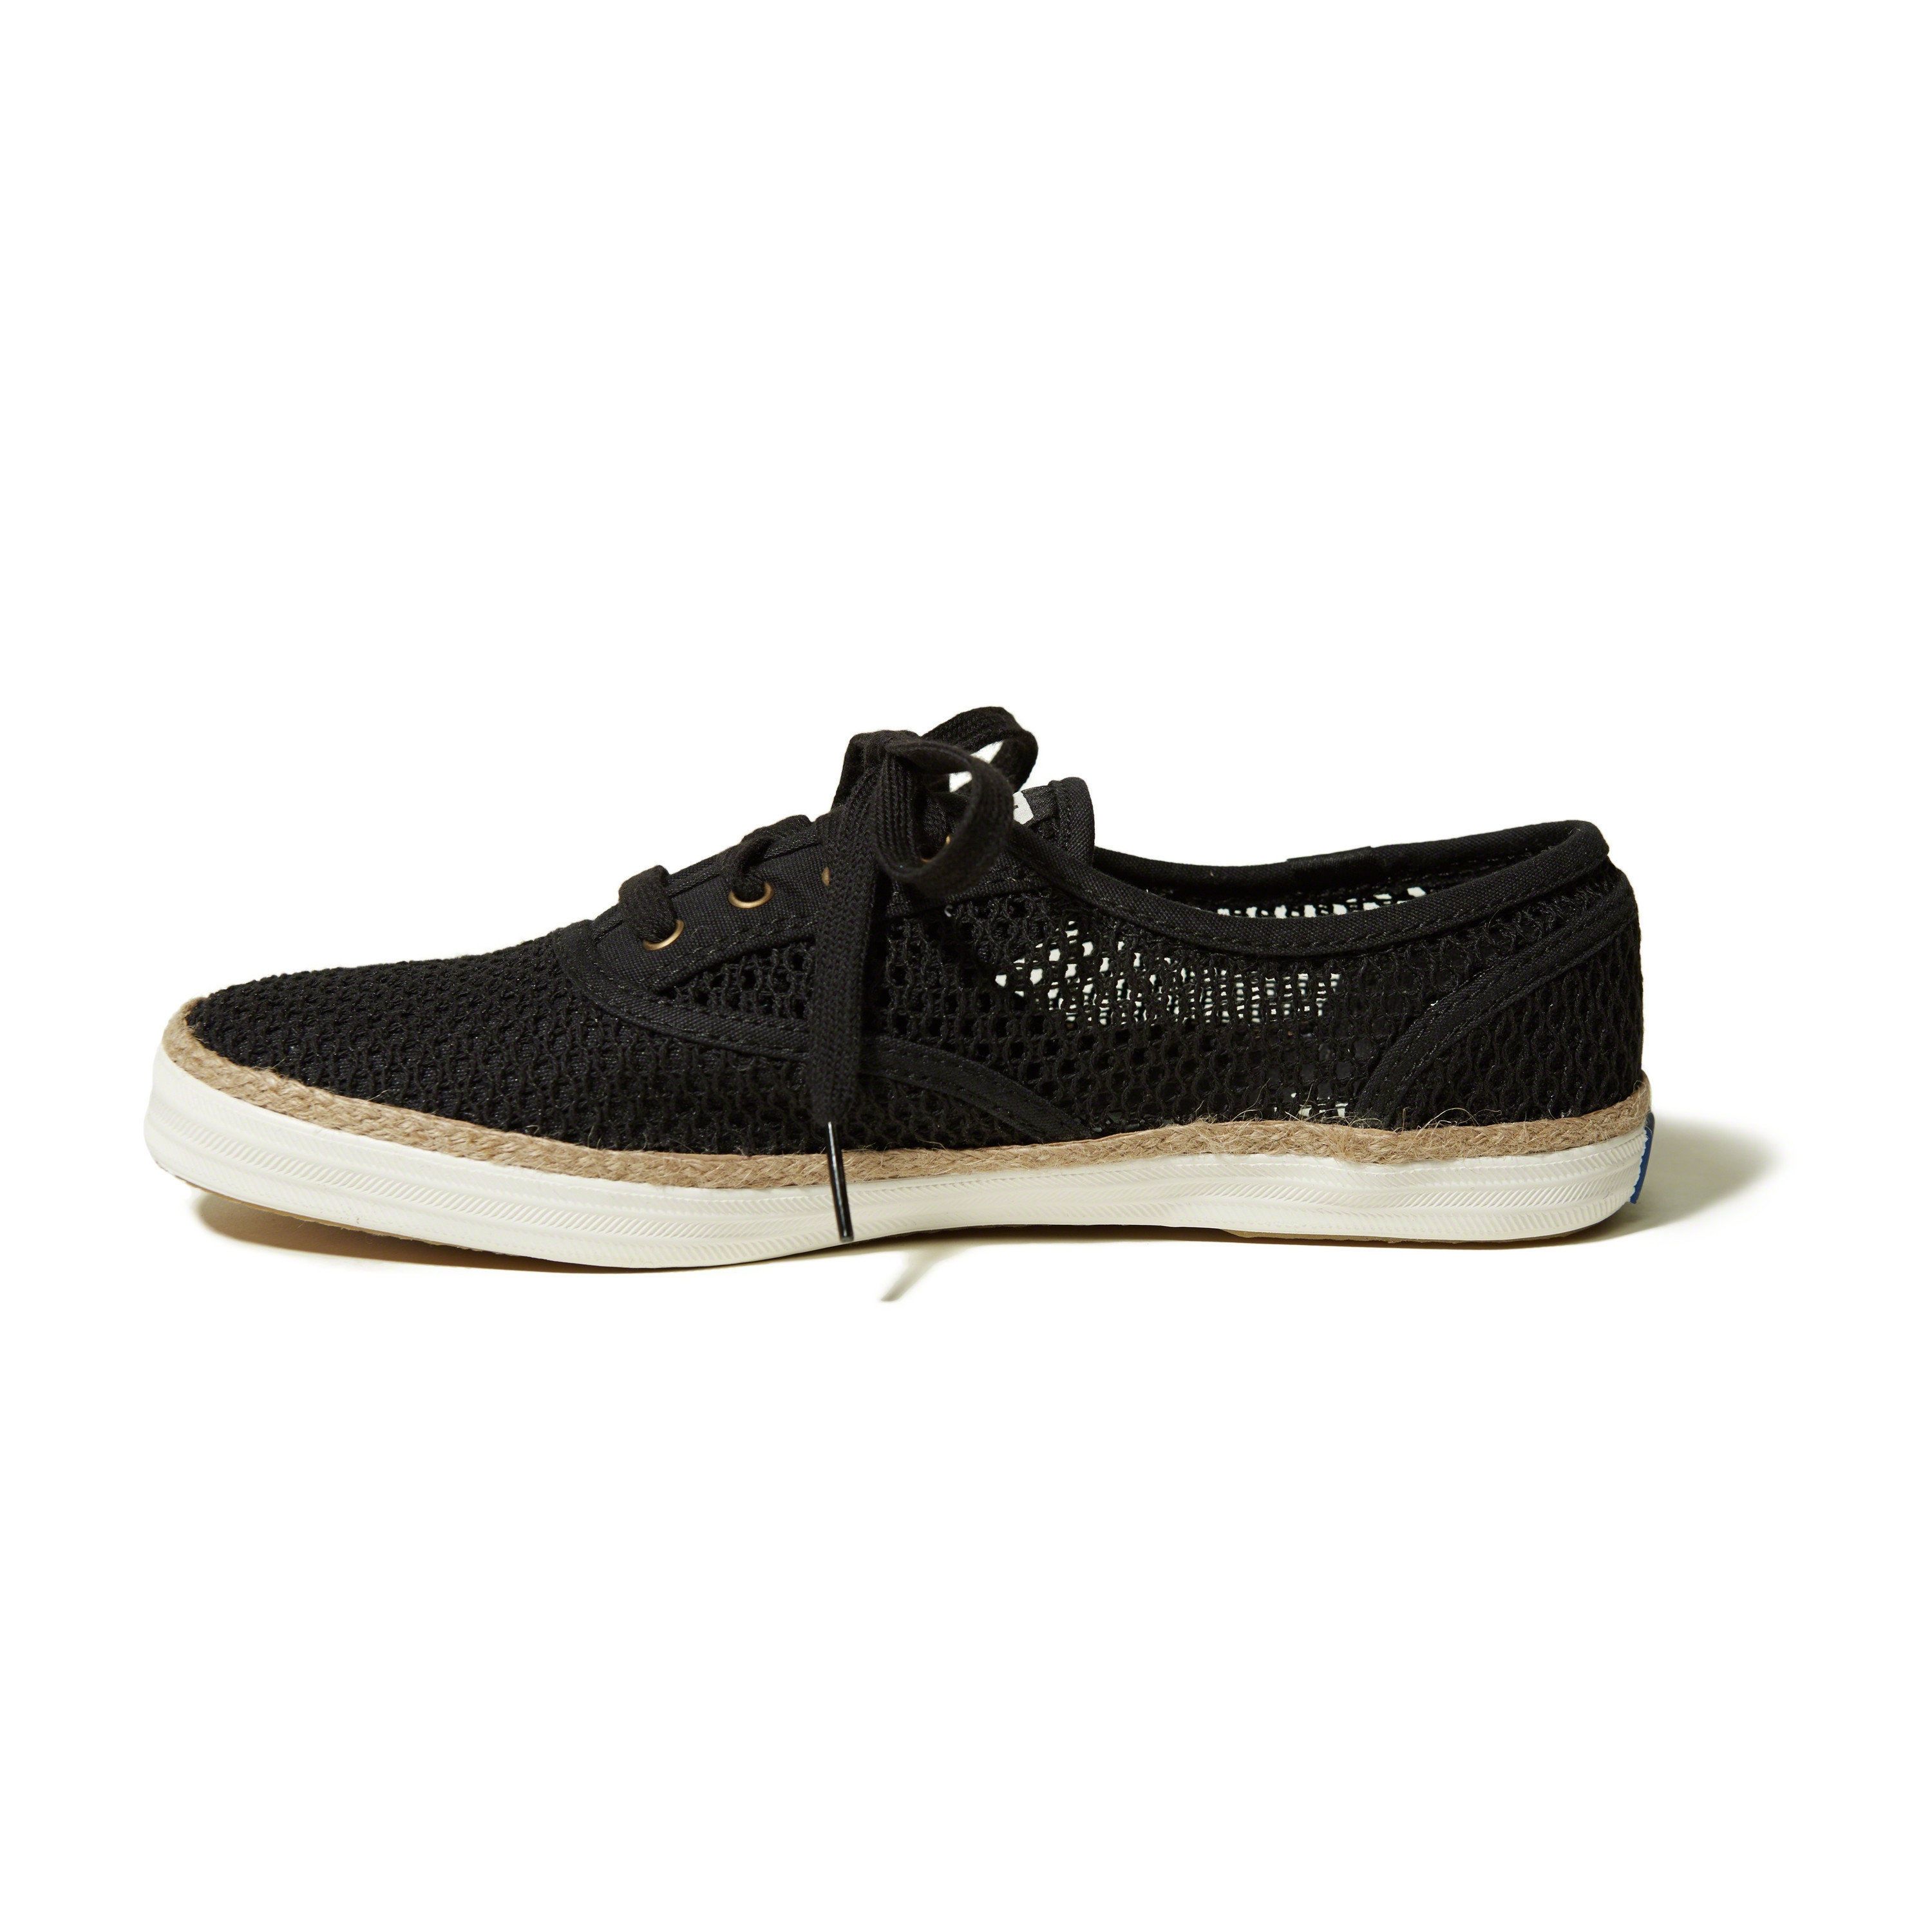 Crochet Sneakers Elegant Lyst Hollister Keds Champion Crochet Sneaker In Black Of Gorgeous 50 Pics Crochet Sneakers